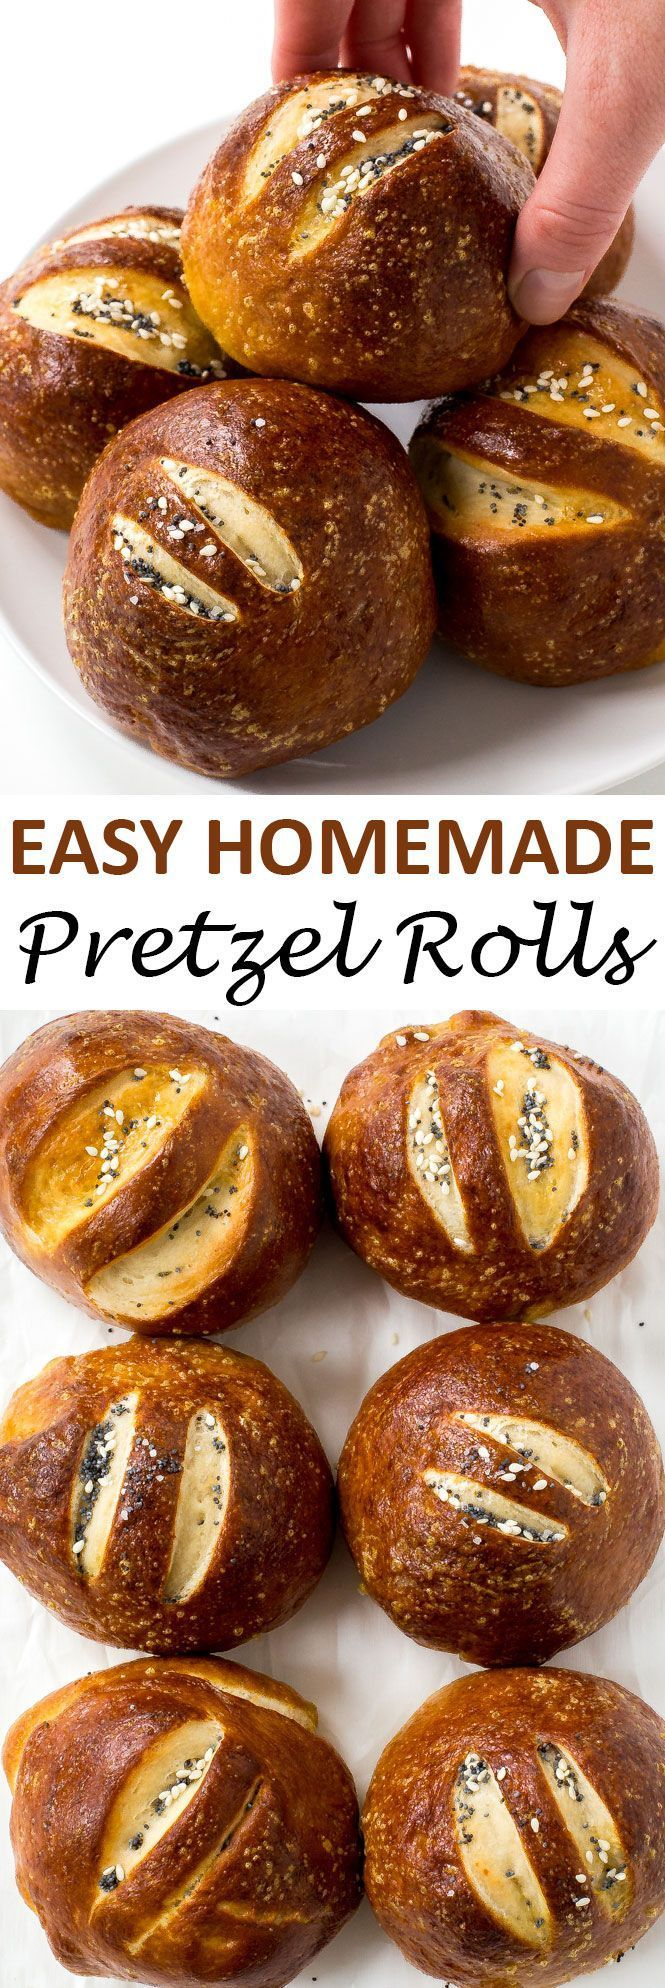 Homemade Pretzel Rolls baked to perfection and topped with sesame seeds, salt and poppy seeds. / chefsavvy.com